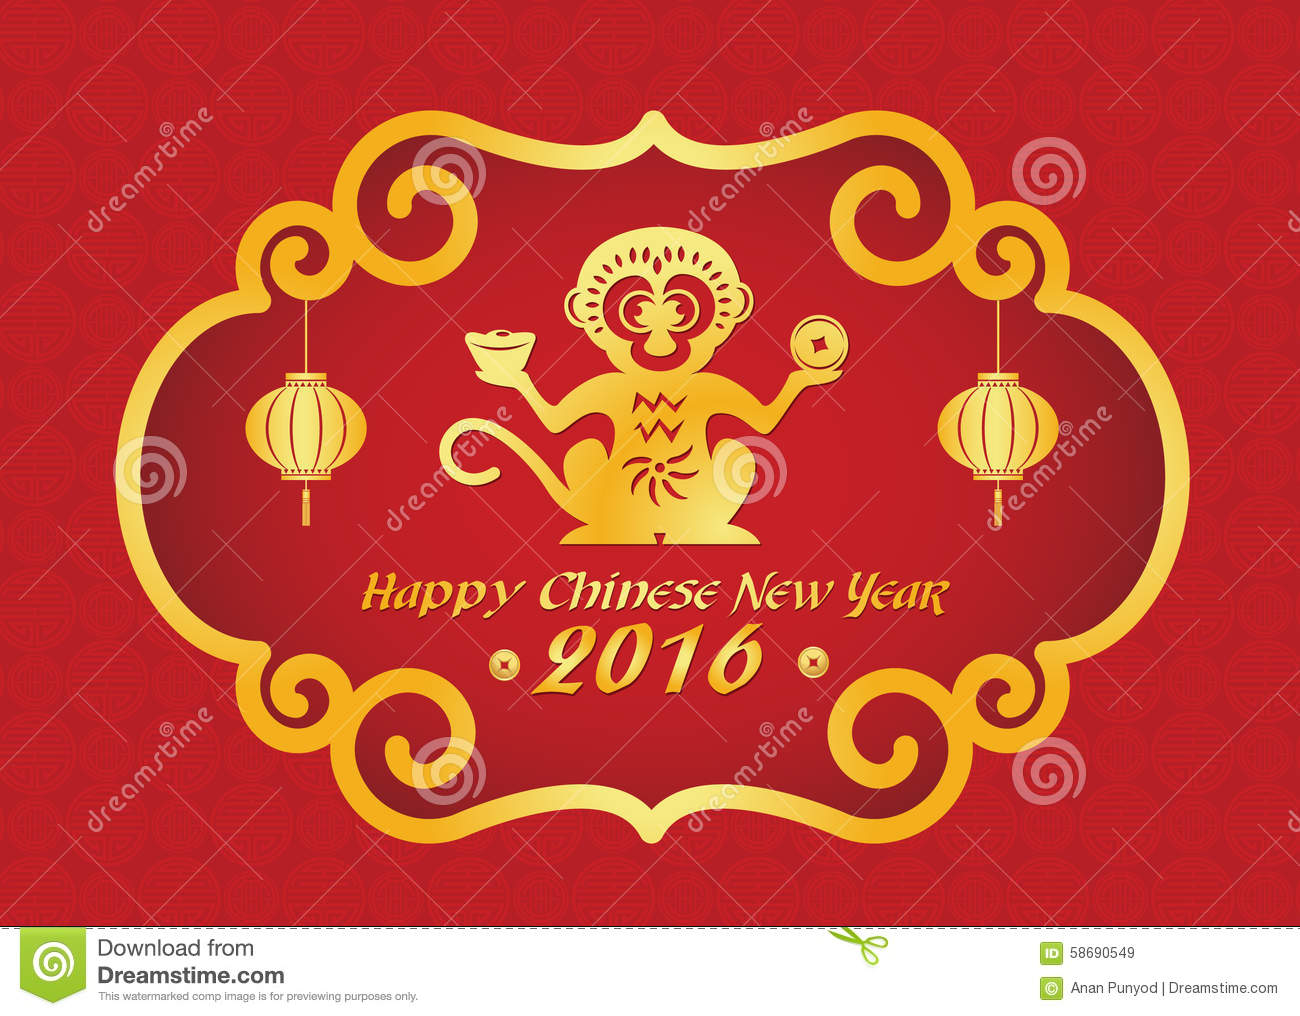 New year if so have you gone to one of the chinese festivals